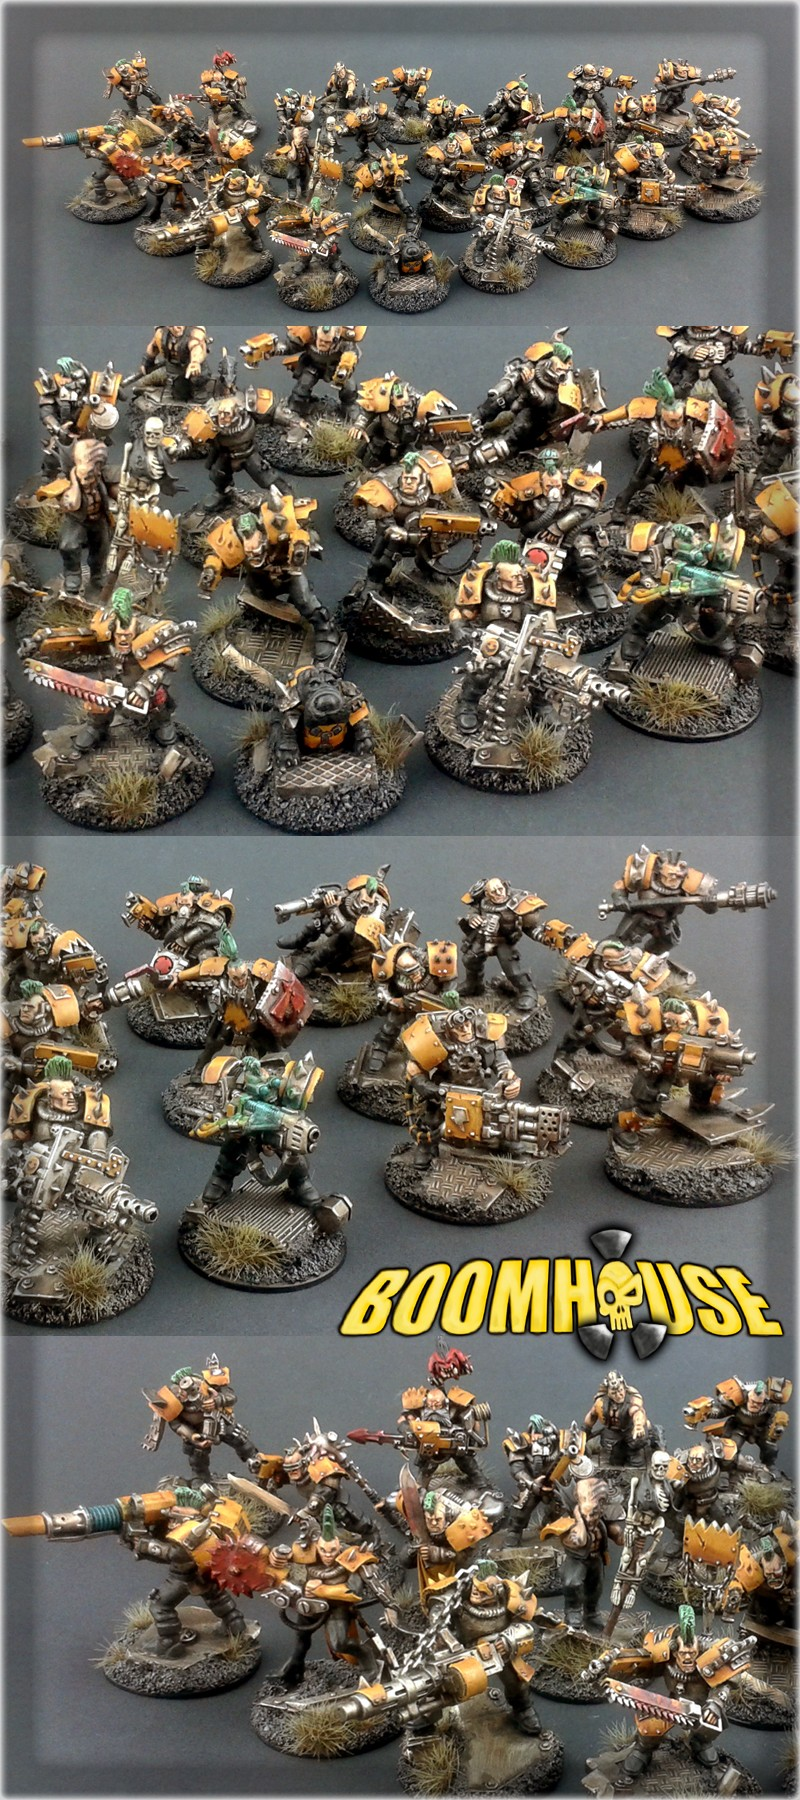 Scar_hand Painting - Necromunda Goliath Boomhouse Gang by Nazroth